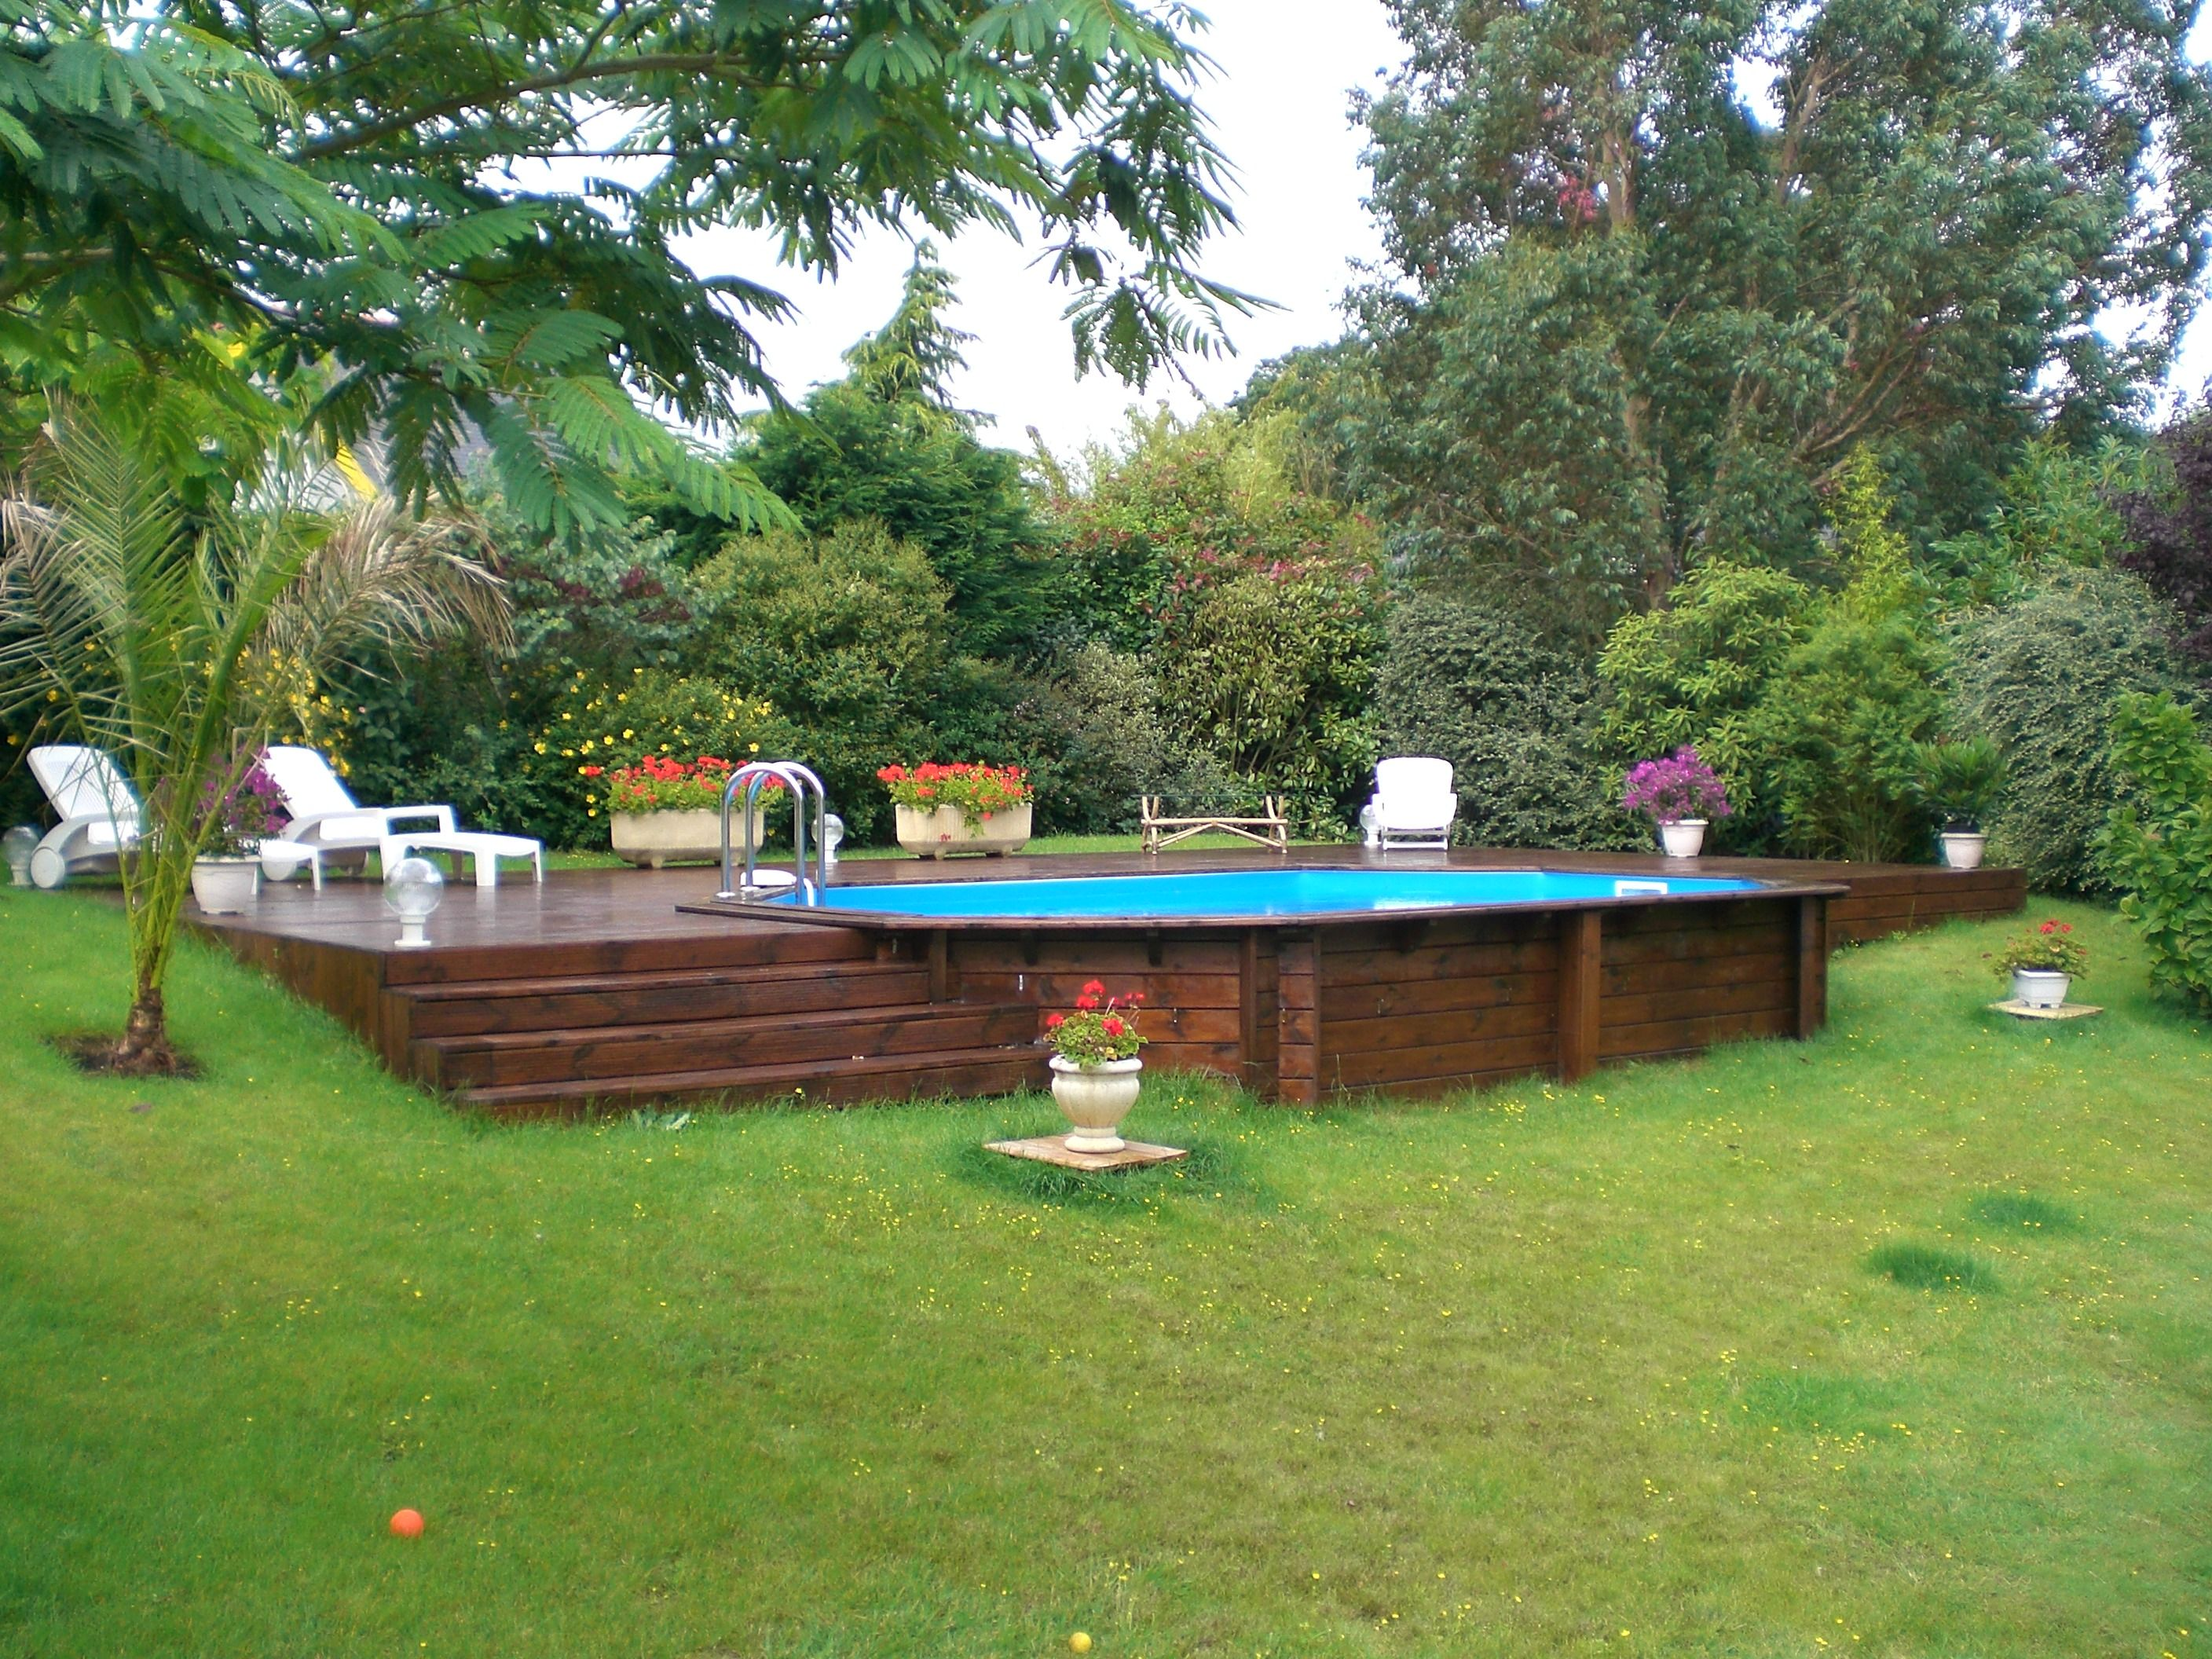 Piscine hors sol en bois semi enterr e sur terrain en for Photo amenagement exterieur terrain en pente